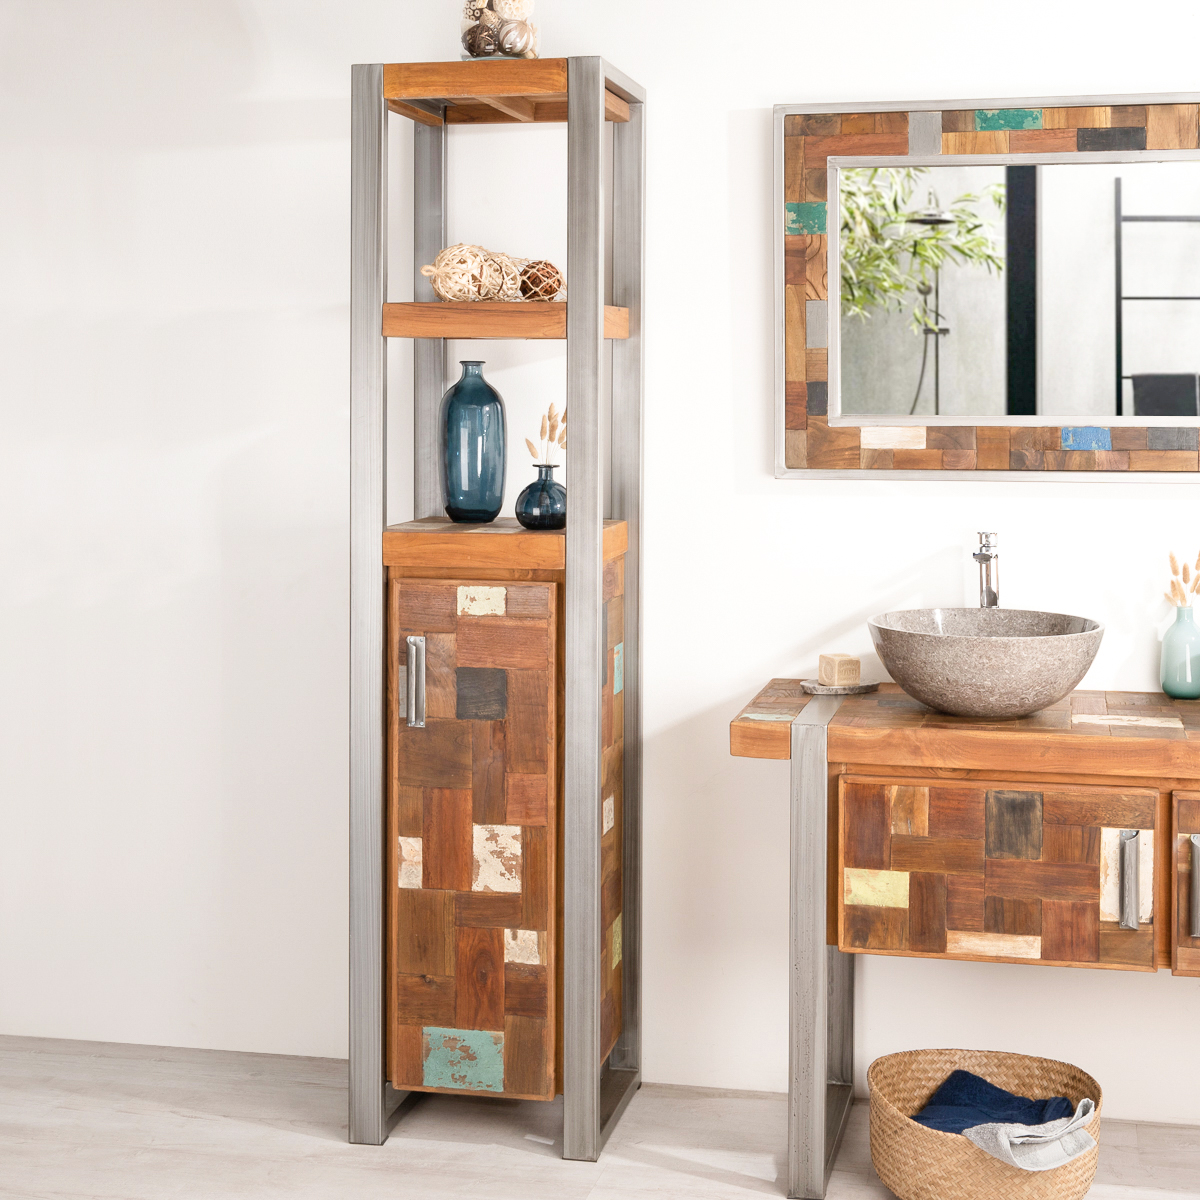 colonne de rangement en bois massif 190cm meubles salle de bain wanda collection. Black Bedroom Furniture Sets. Home Design Ideas